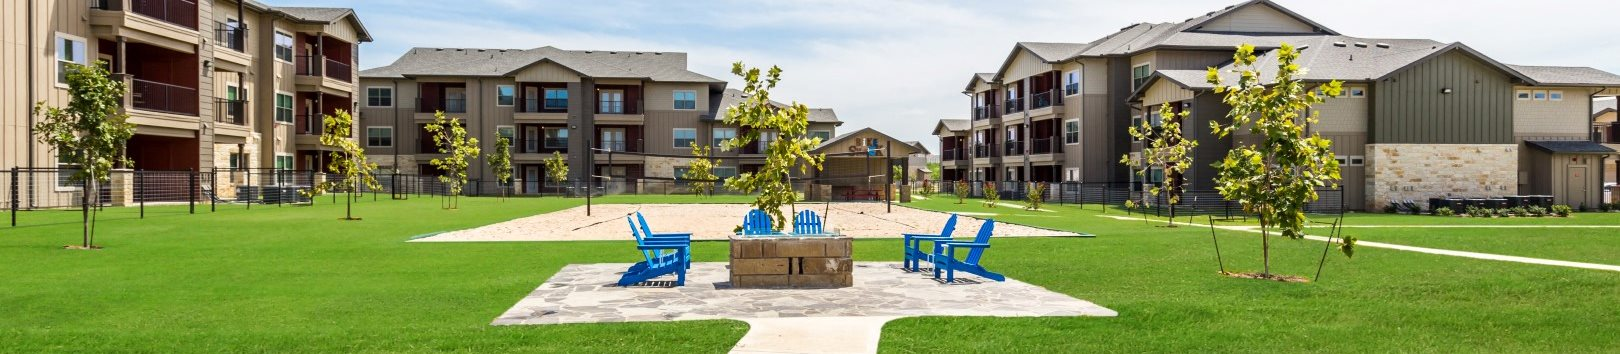 Lush Landscaping at Legacy Creekside, San Antonio